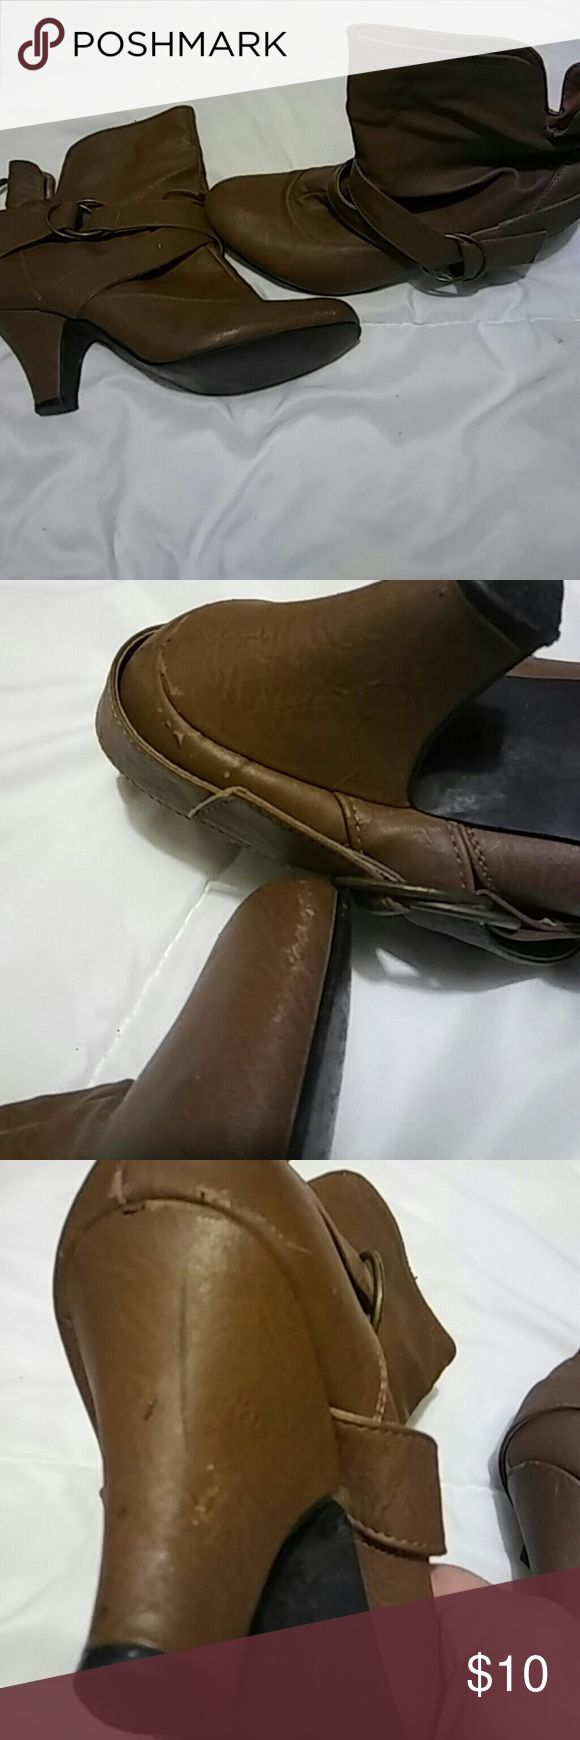 🔹Charlotte Russe | Brown Heel Booties Great condition Charlotte Russe heel booties size 9. Minor scuffs as pictured. Charlotte Russe Shoes Ankle Boots & Booties